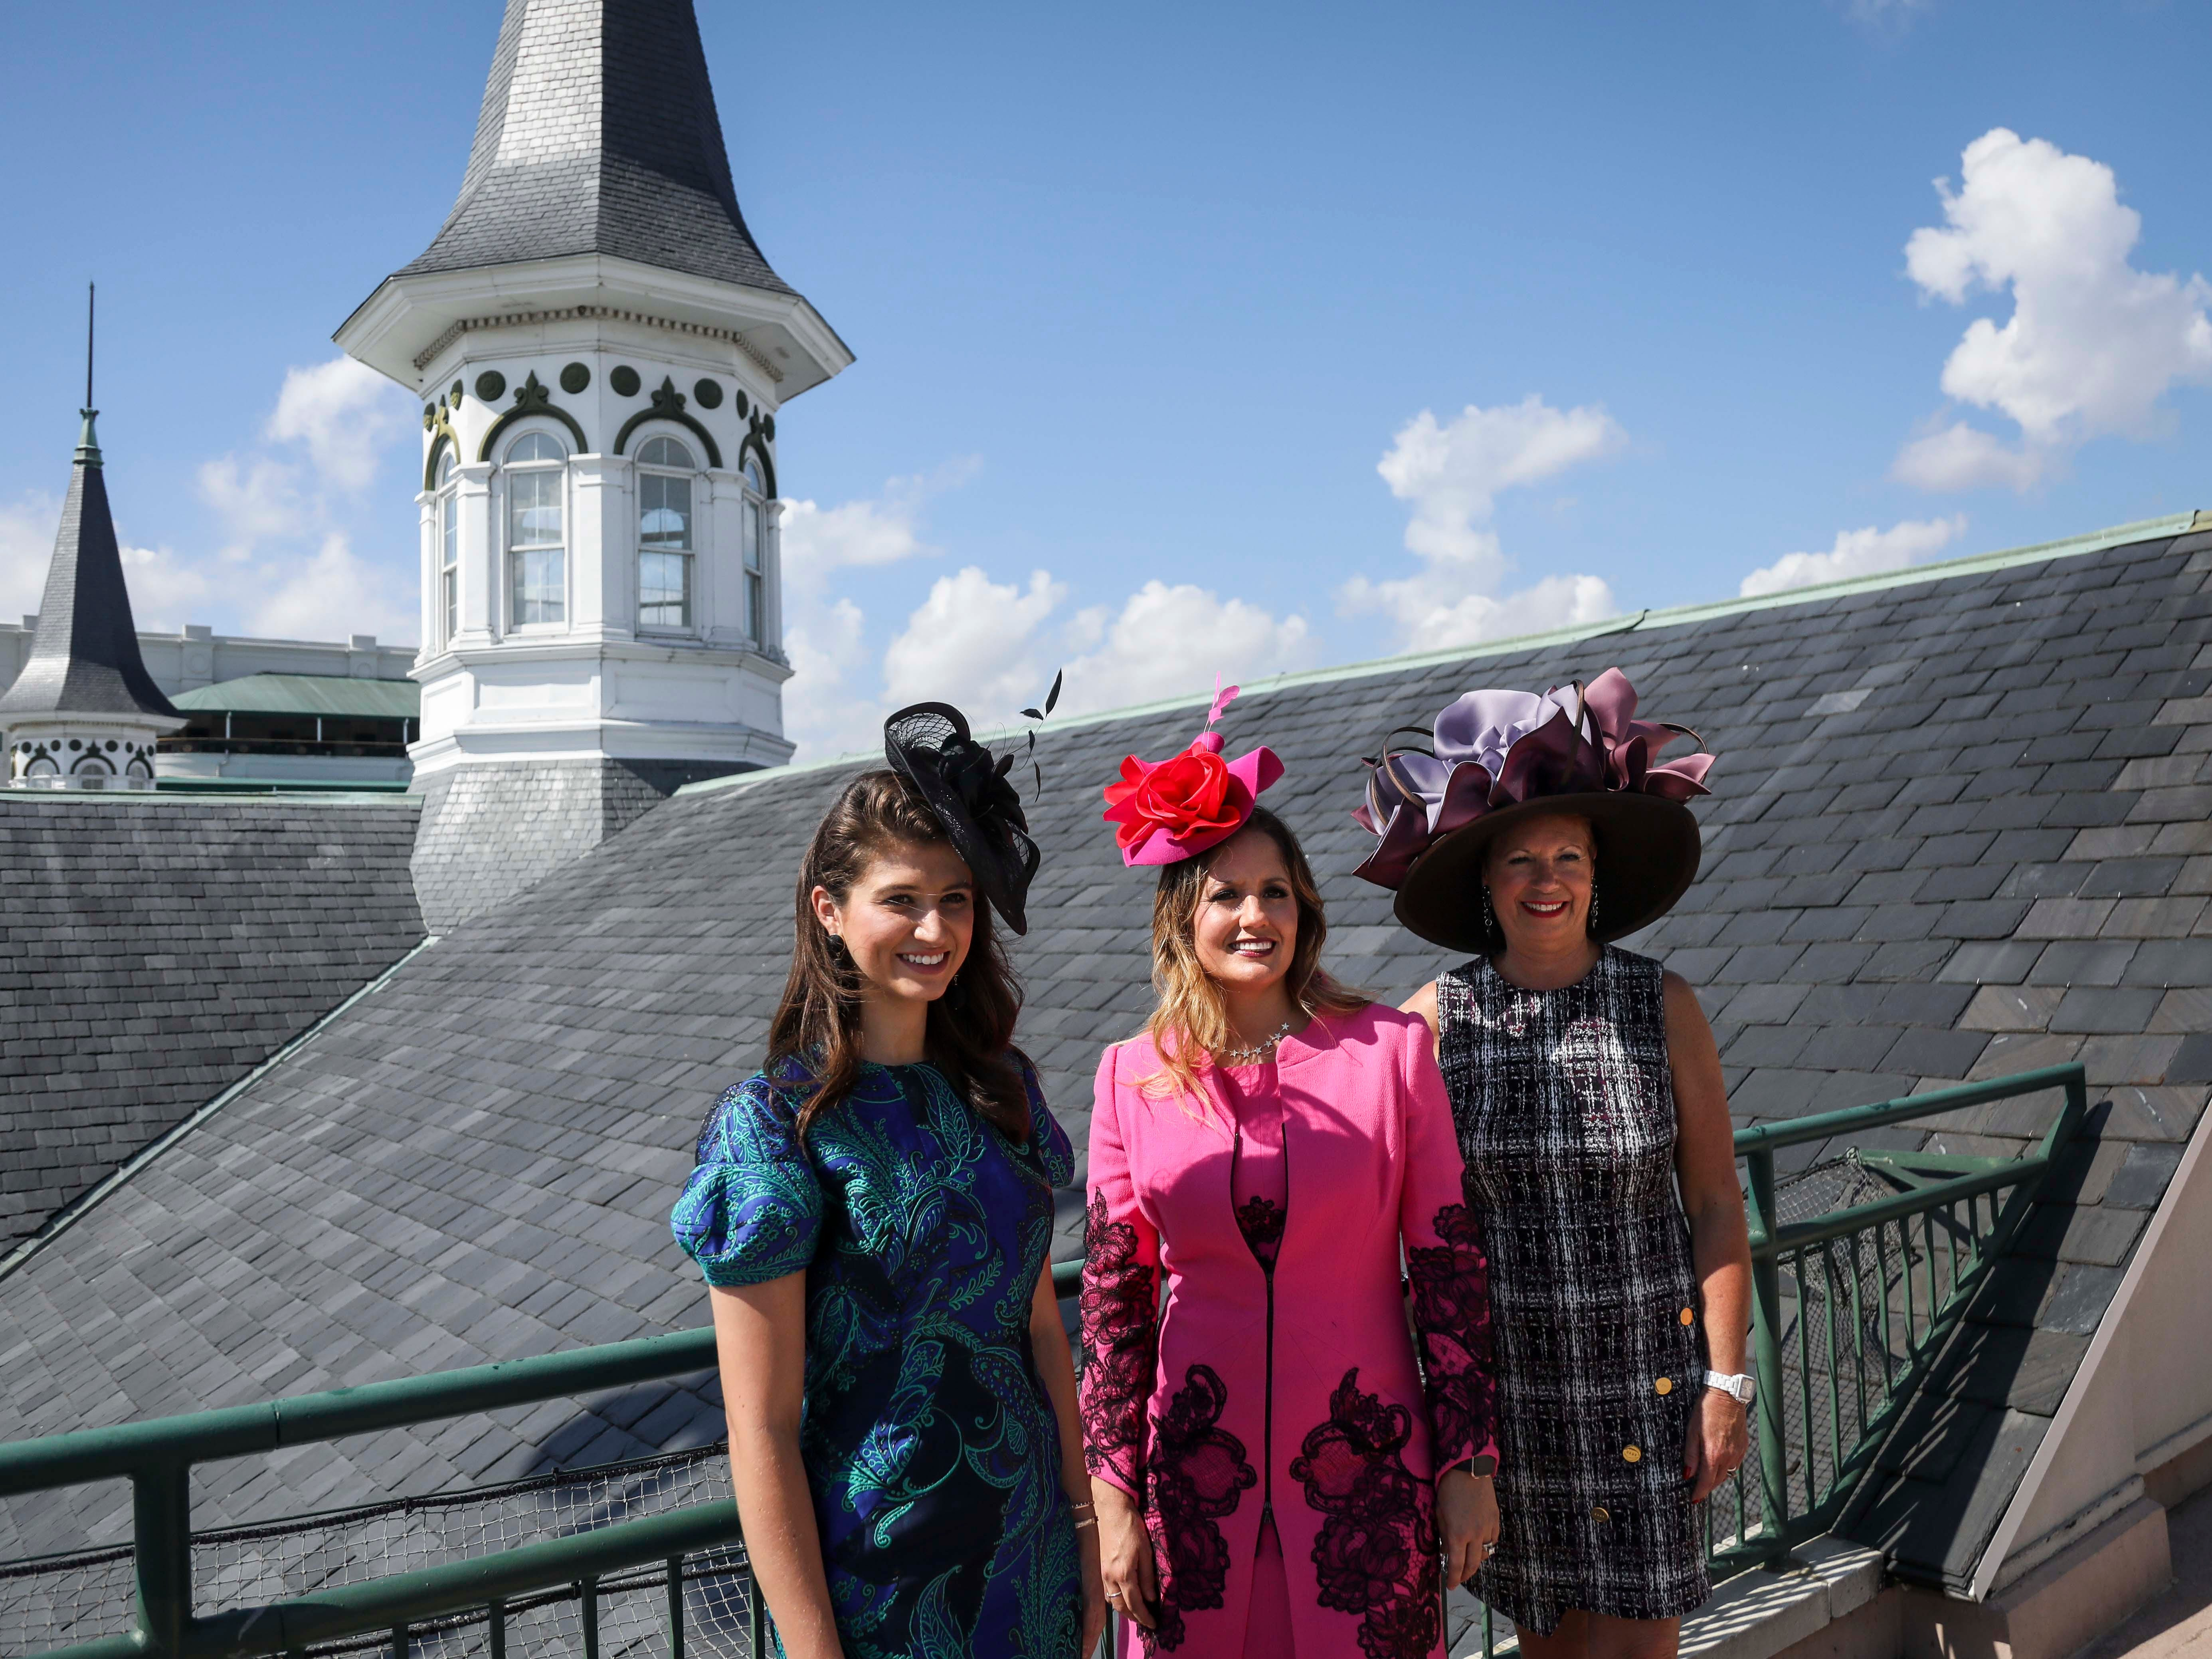 From left to right: Katie Bouchard, Candice Isa, and Patty Ethington don dresses made by Lourdes Chavez and hats made by Christine Moore, track fashion expert and owner of Cam Hats, during an interview with the Courier Journal ahead of the Breeders Cup (November 3) at Churchill Downs on Wednesday, October 3, 2018.